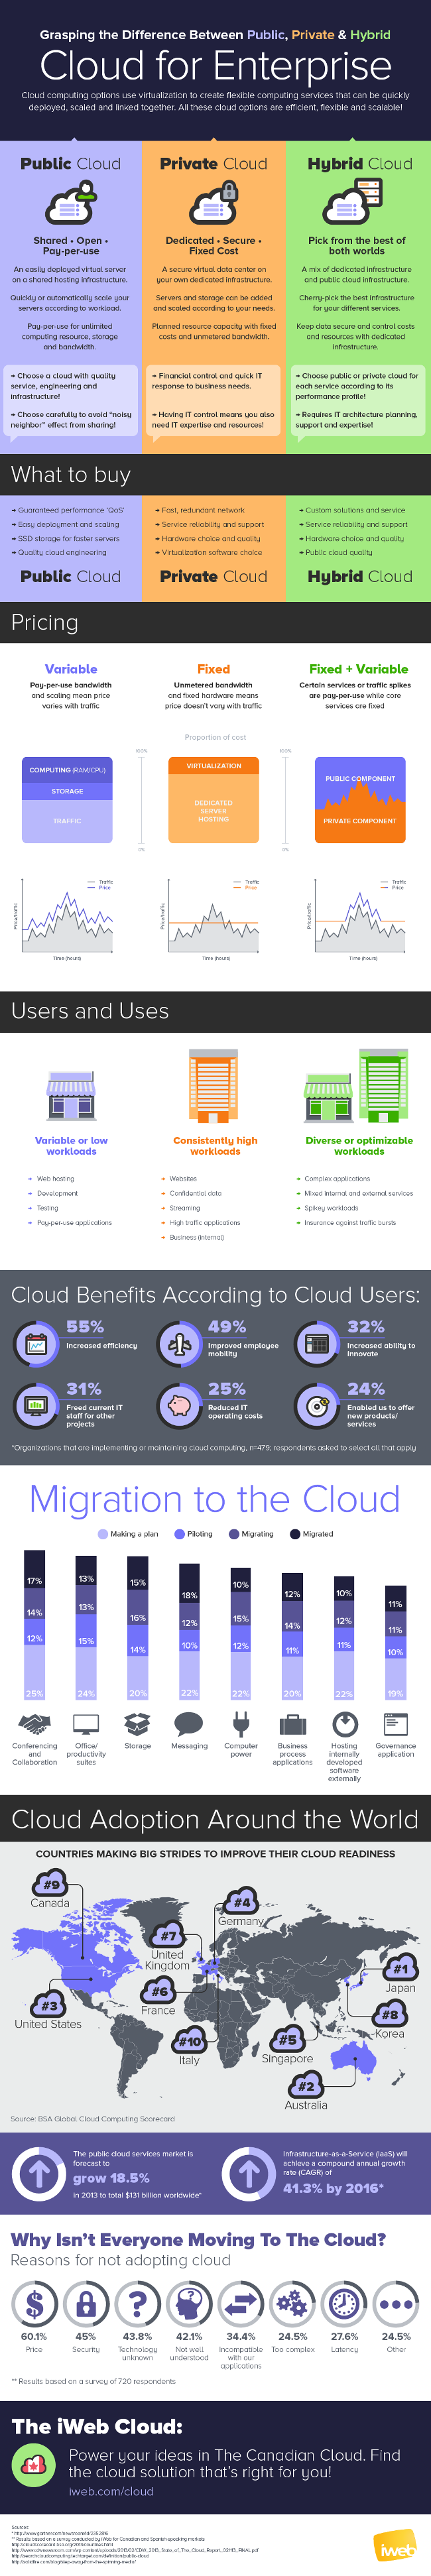 difference-public-private-hybrid-cloud_650